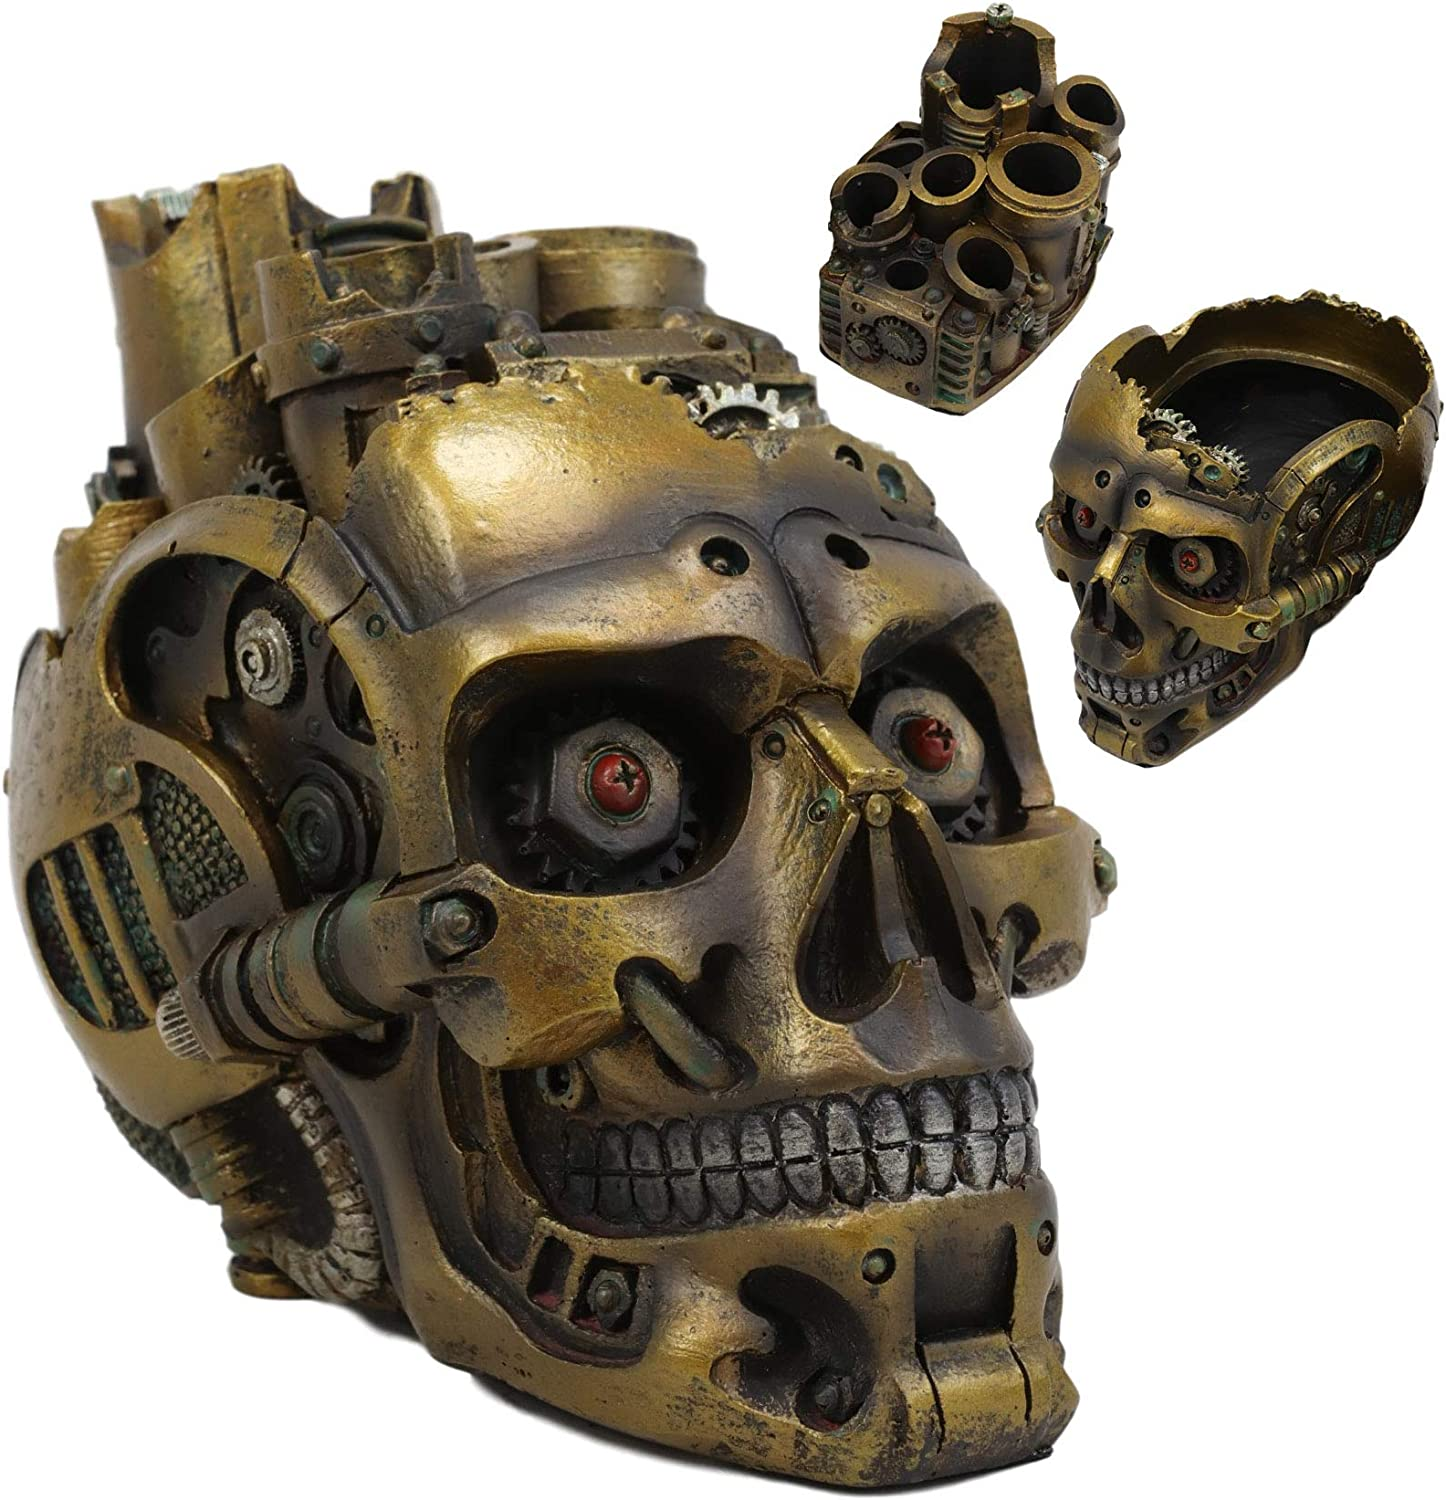 Outlet ☆ Free Shipping Ebros Gift Mad Max Steampunk Popularity Cyborg Box Skull Decorative Robotic